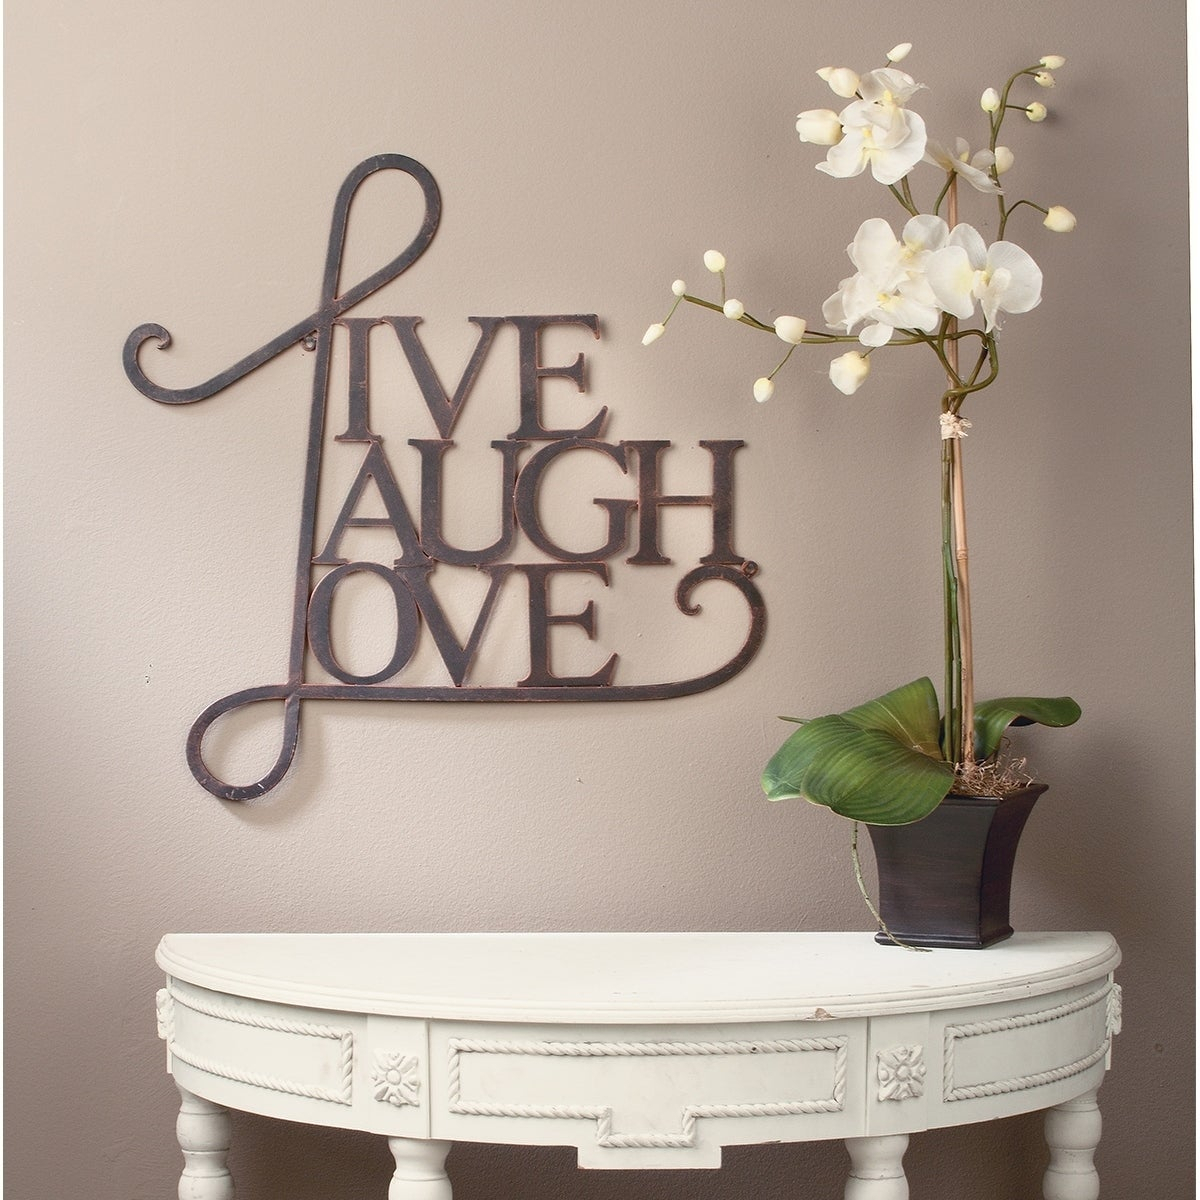 Best And Newest Live, Laugh, Love Wall Decor Antique Copper / White Finish For Live, Laugh, Love Antique Copper Wall Decor (View 2 of 20)